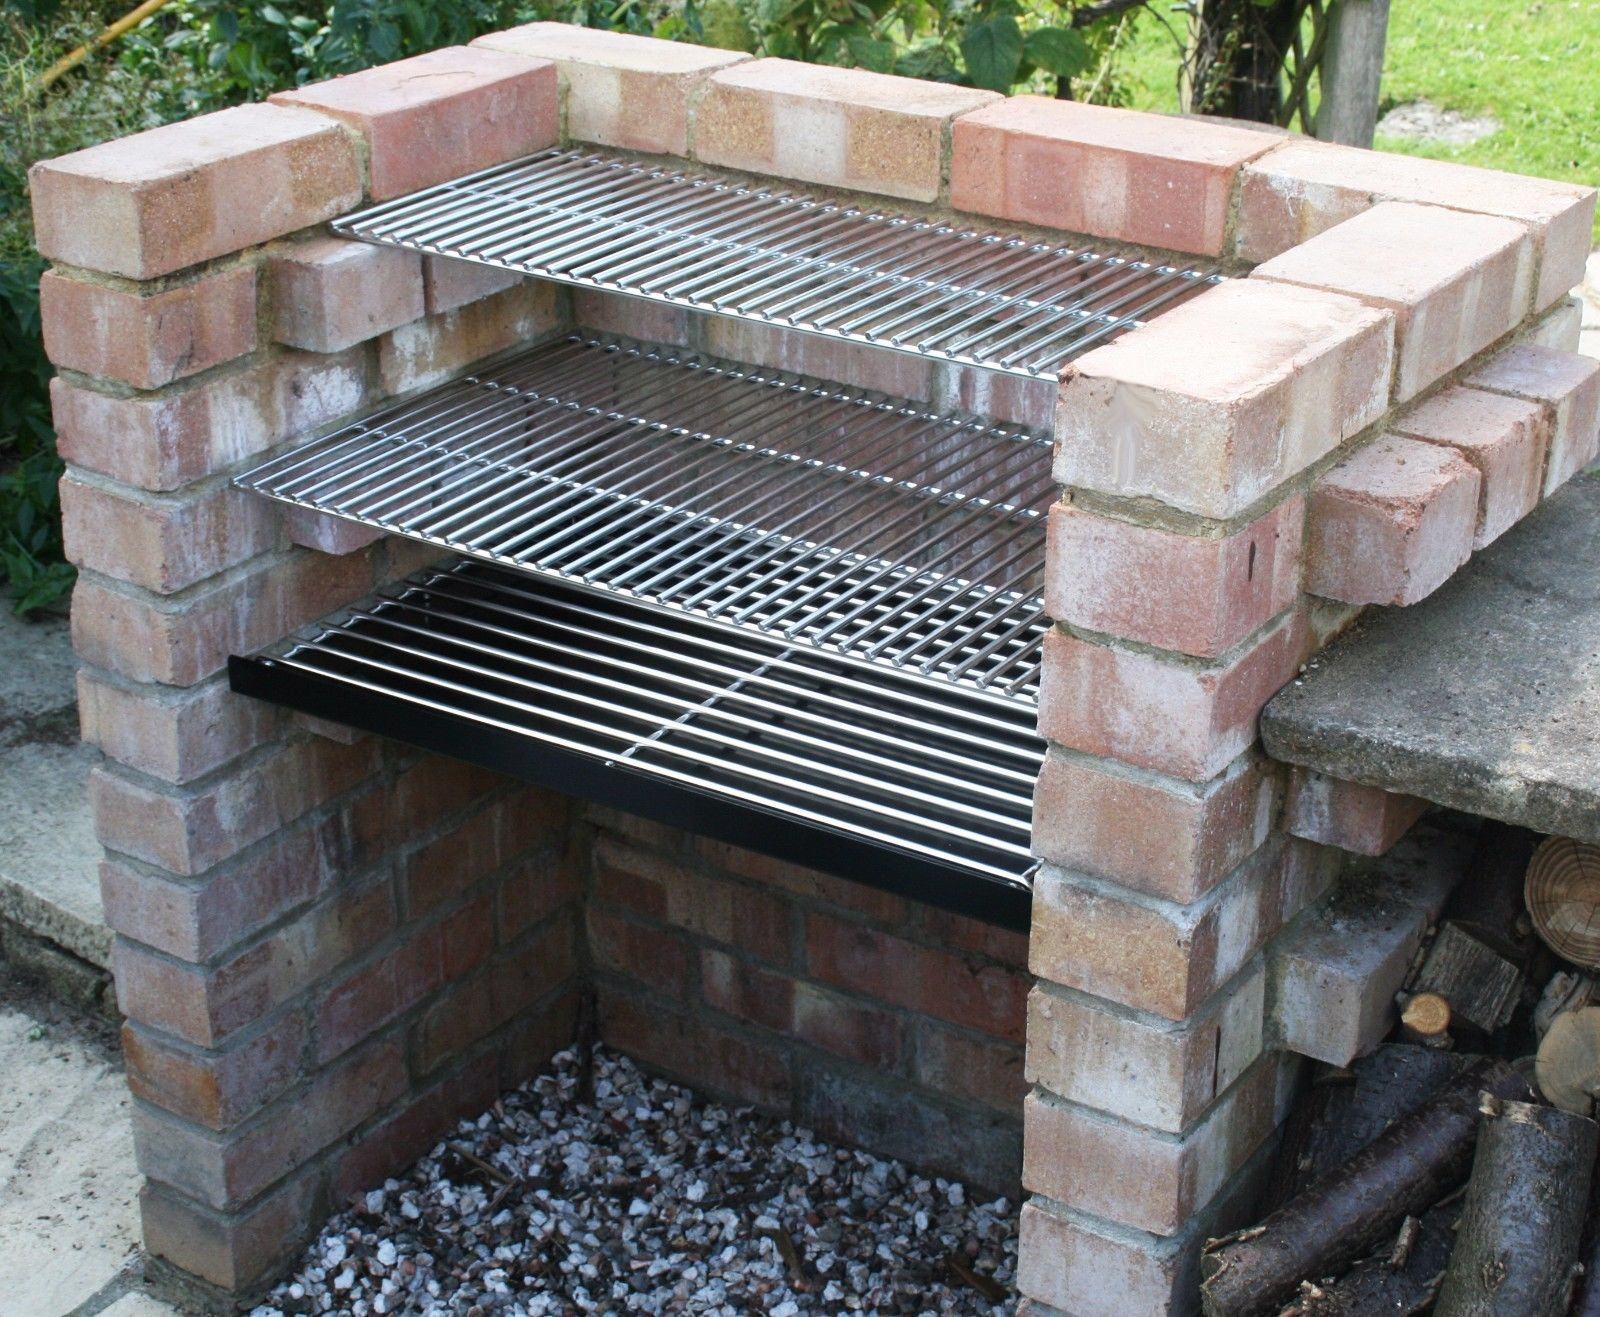 Charcoal Diy Brick Bbq Kit With 6mm Stainless Grill